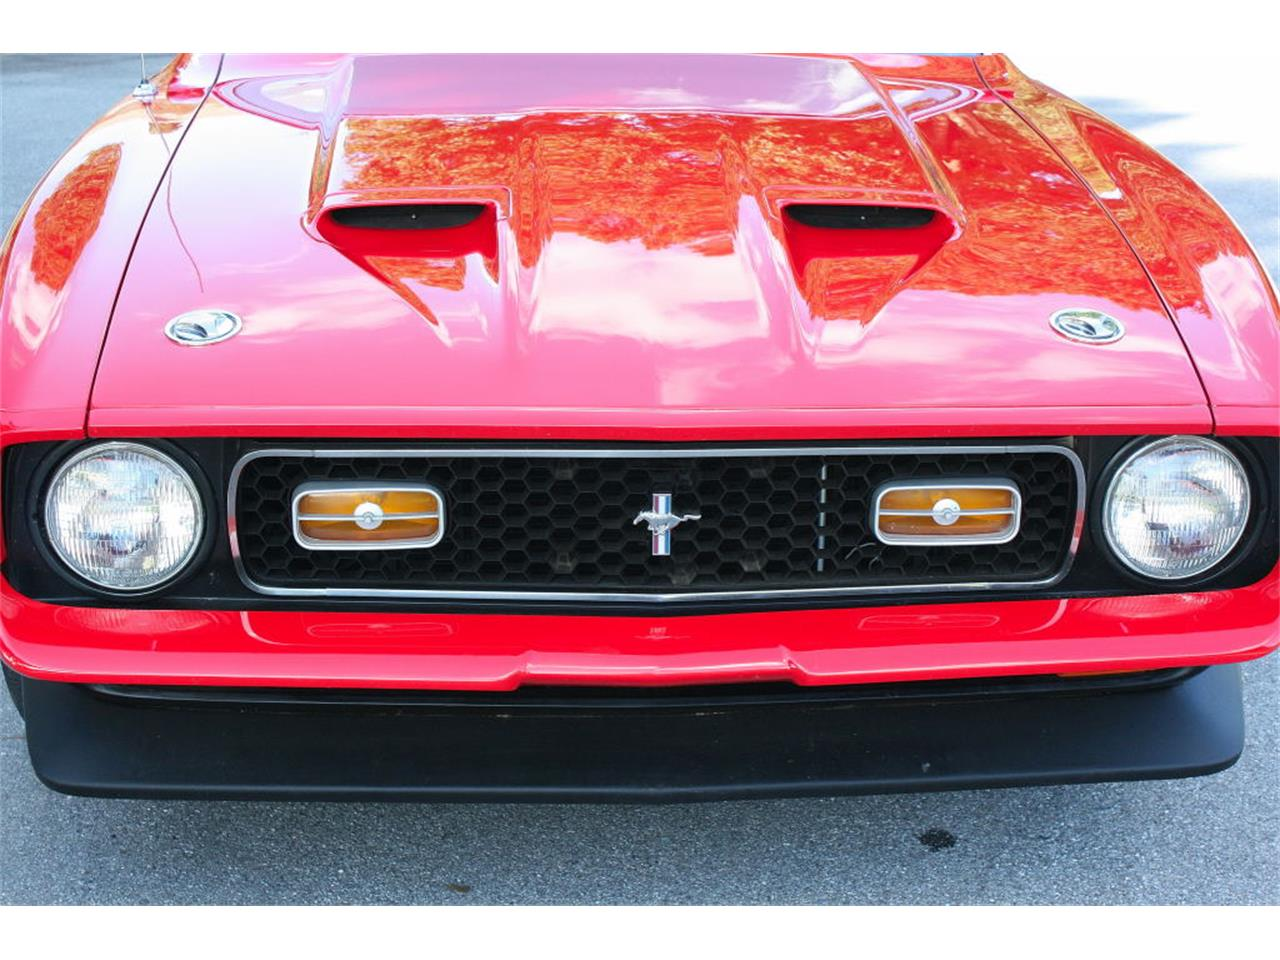 Large Picture of Classic '72 Mustang Offered by MJC Classic Cars - MGWW